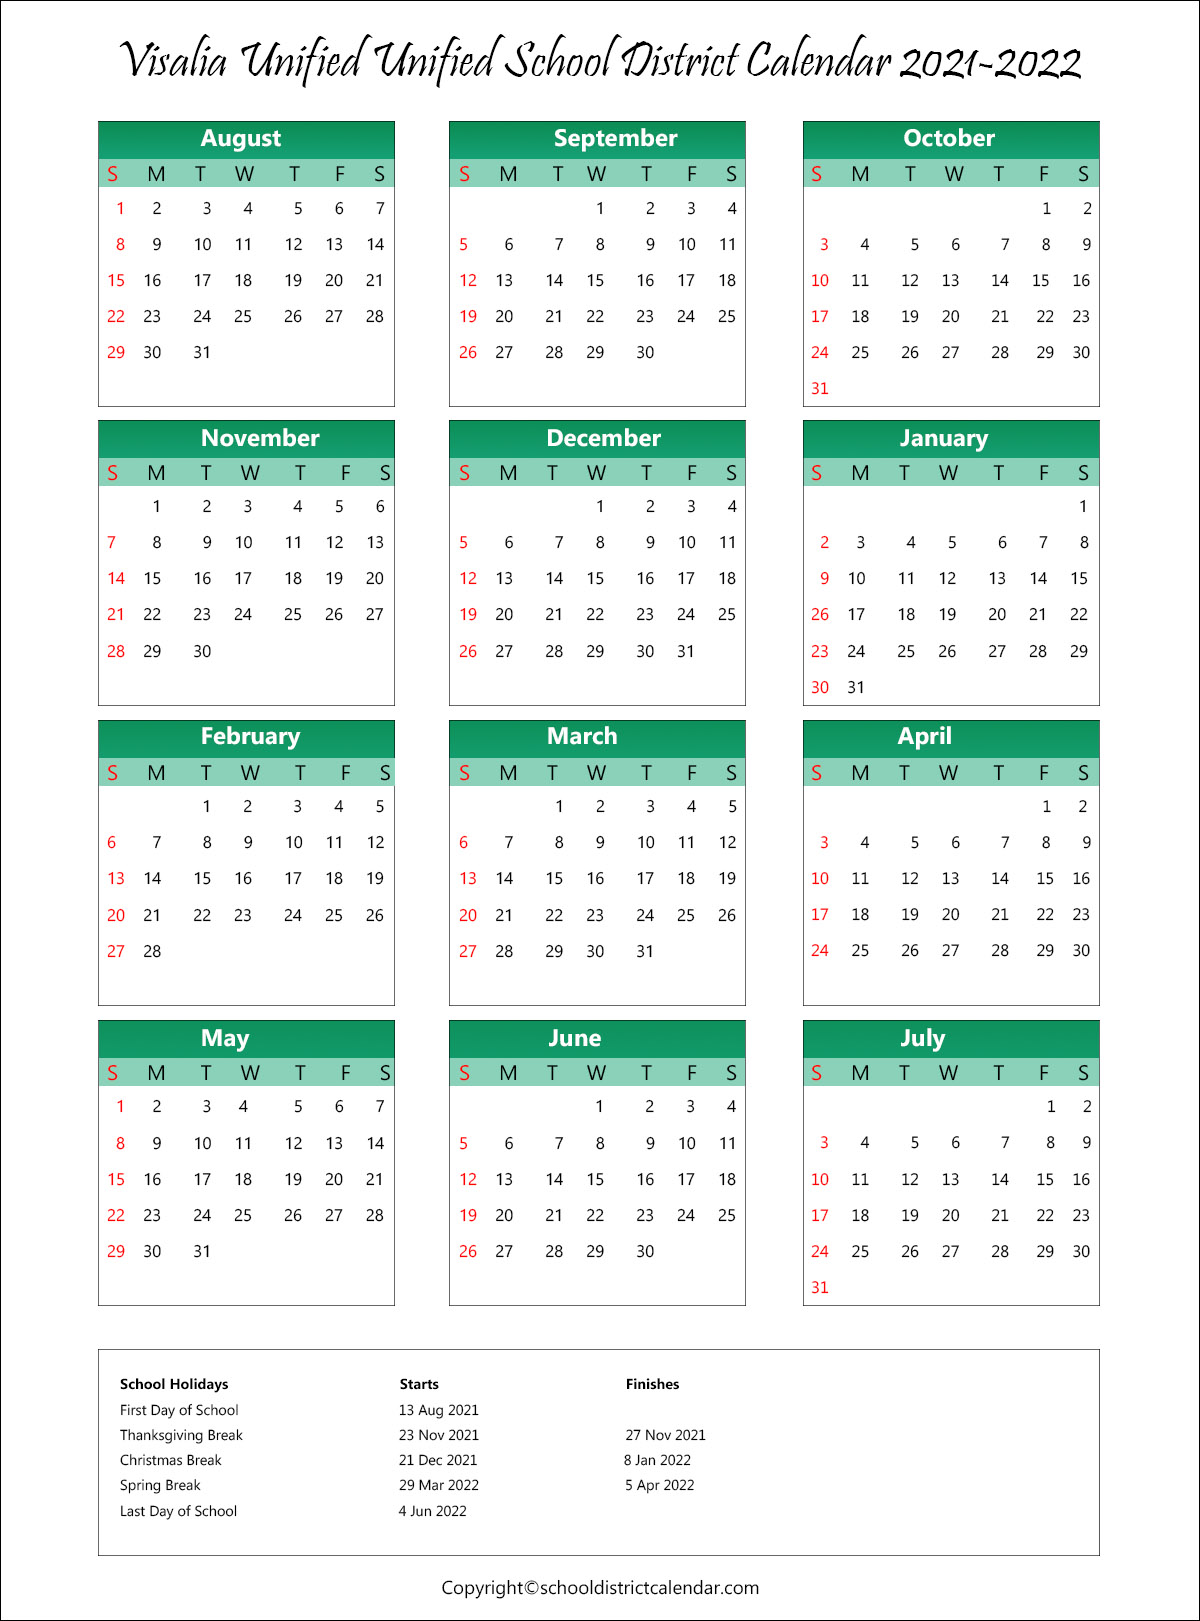 Visalia Unified School District, California Calendar Holidays 2021